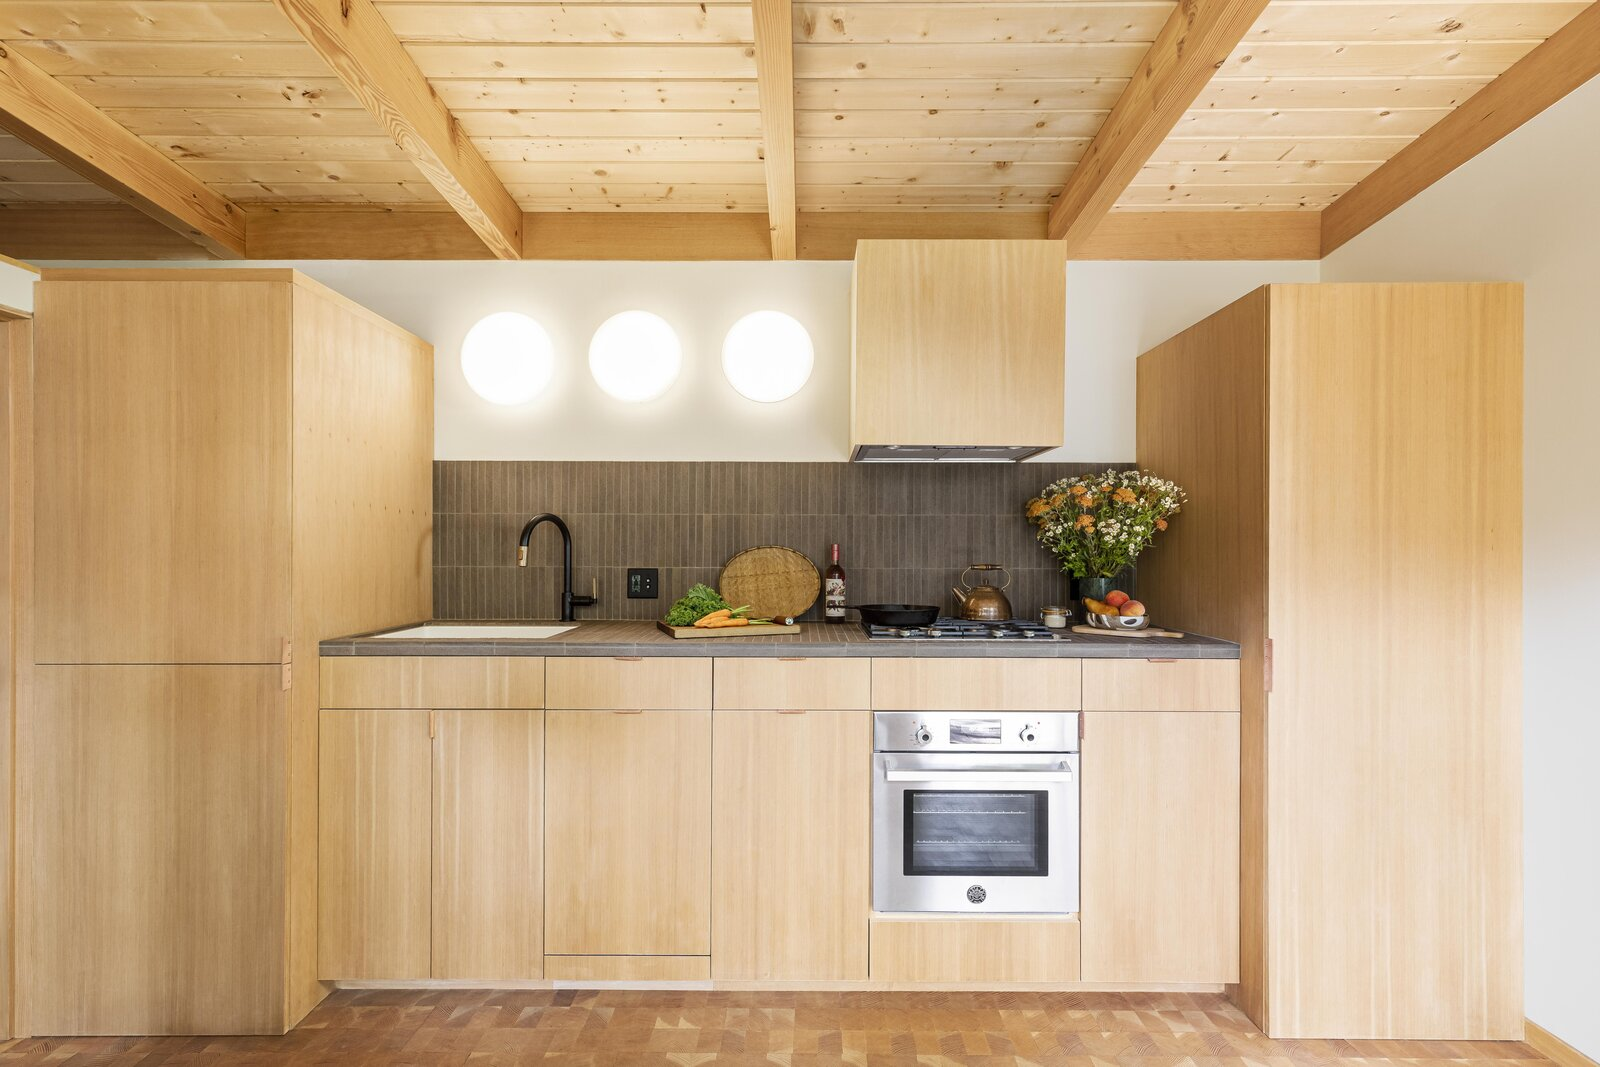 Kitchen of Haseman House by Willa Work